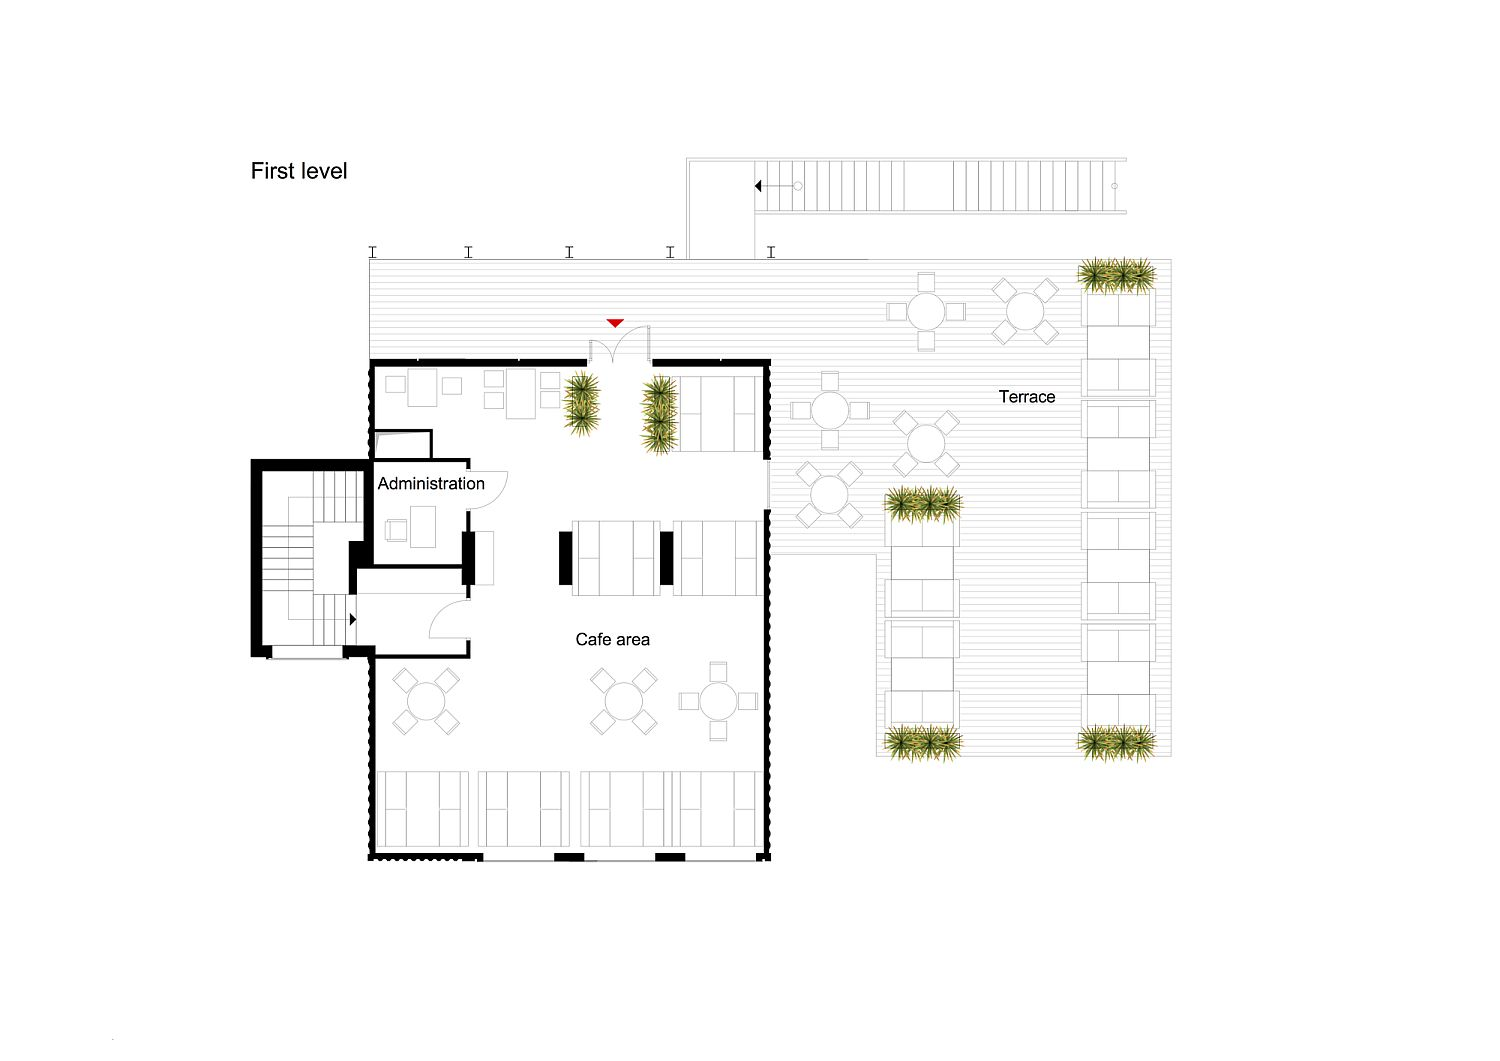 First level floor plan of the UNIT Cafe with terrace